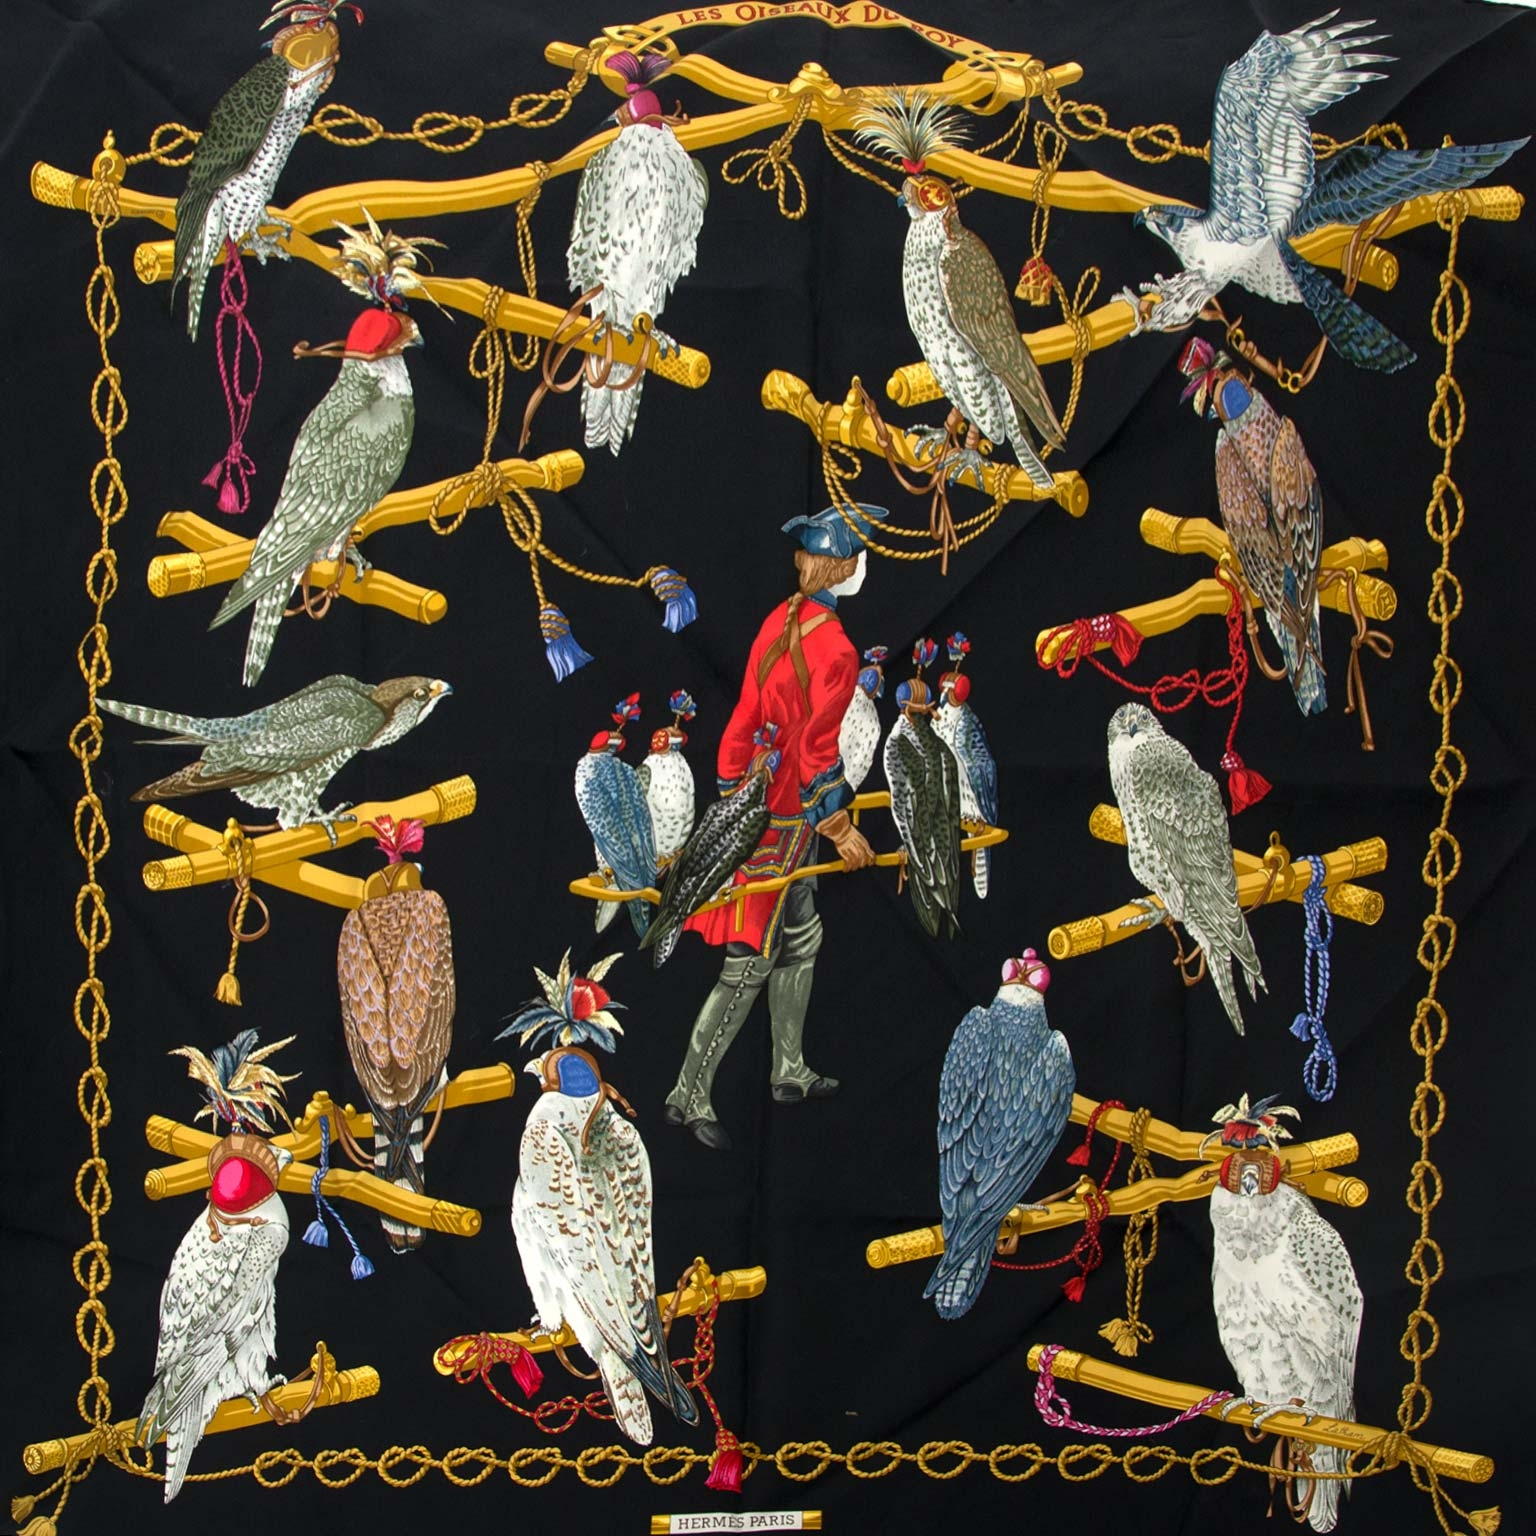 hermes carre les oiseaux du roy now for sale at labellov vintage fashion webshop belgium